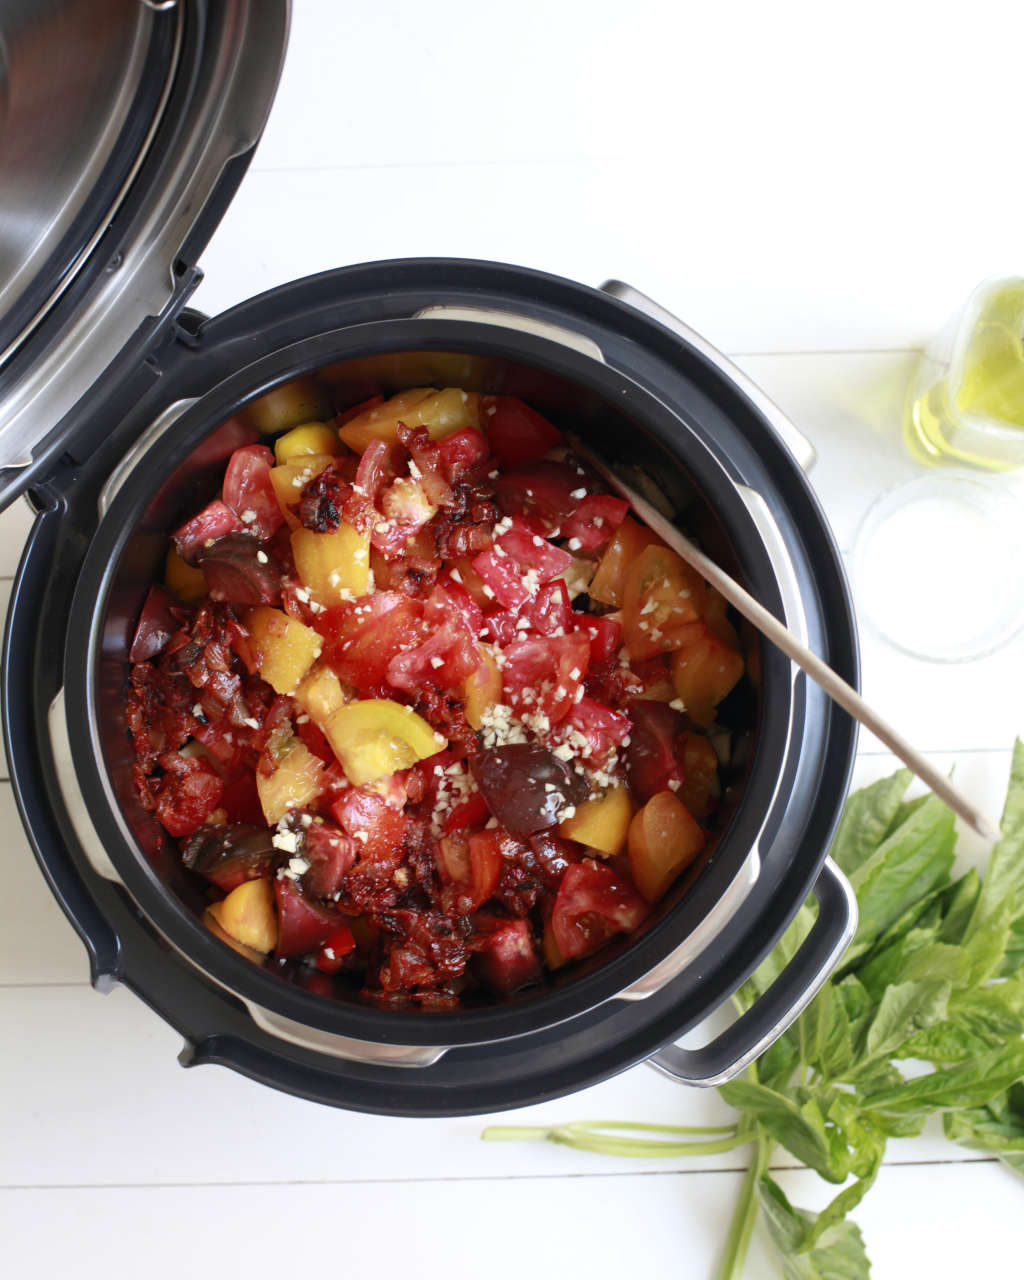 10 Ways the Slow Cooker Can Help You Eat More Vegetables This Summer